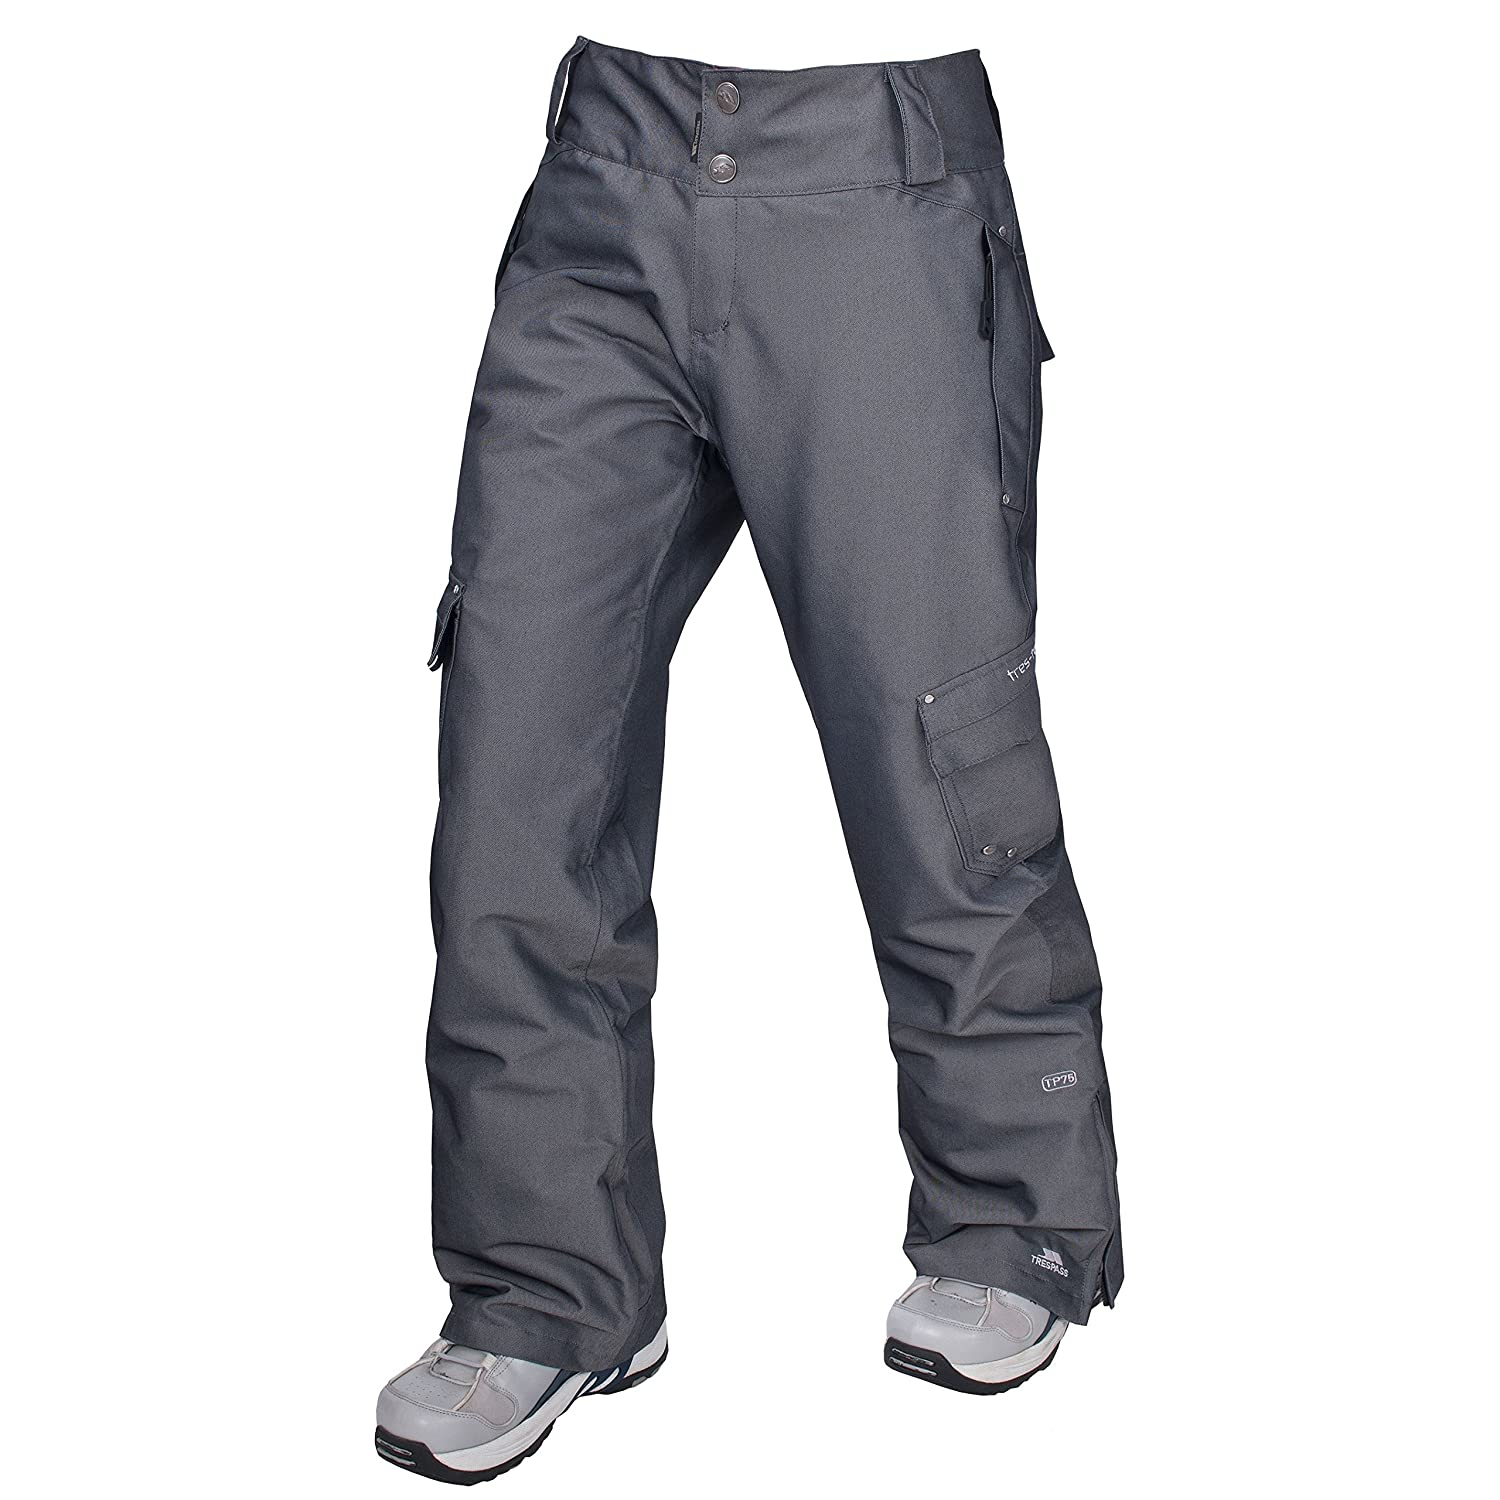 Trespass Damen Dropped Skihose, wasserfest